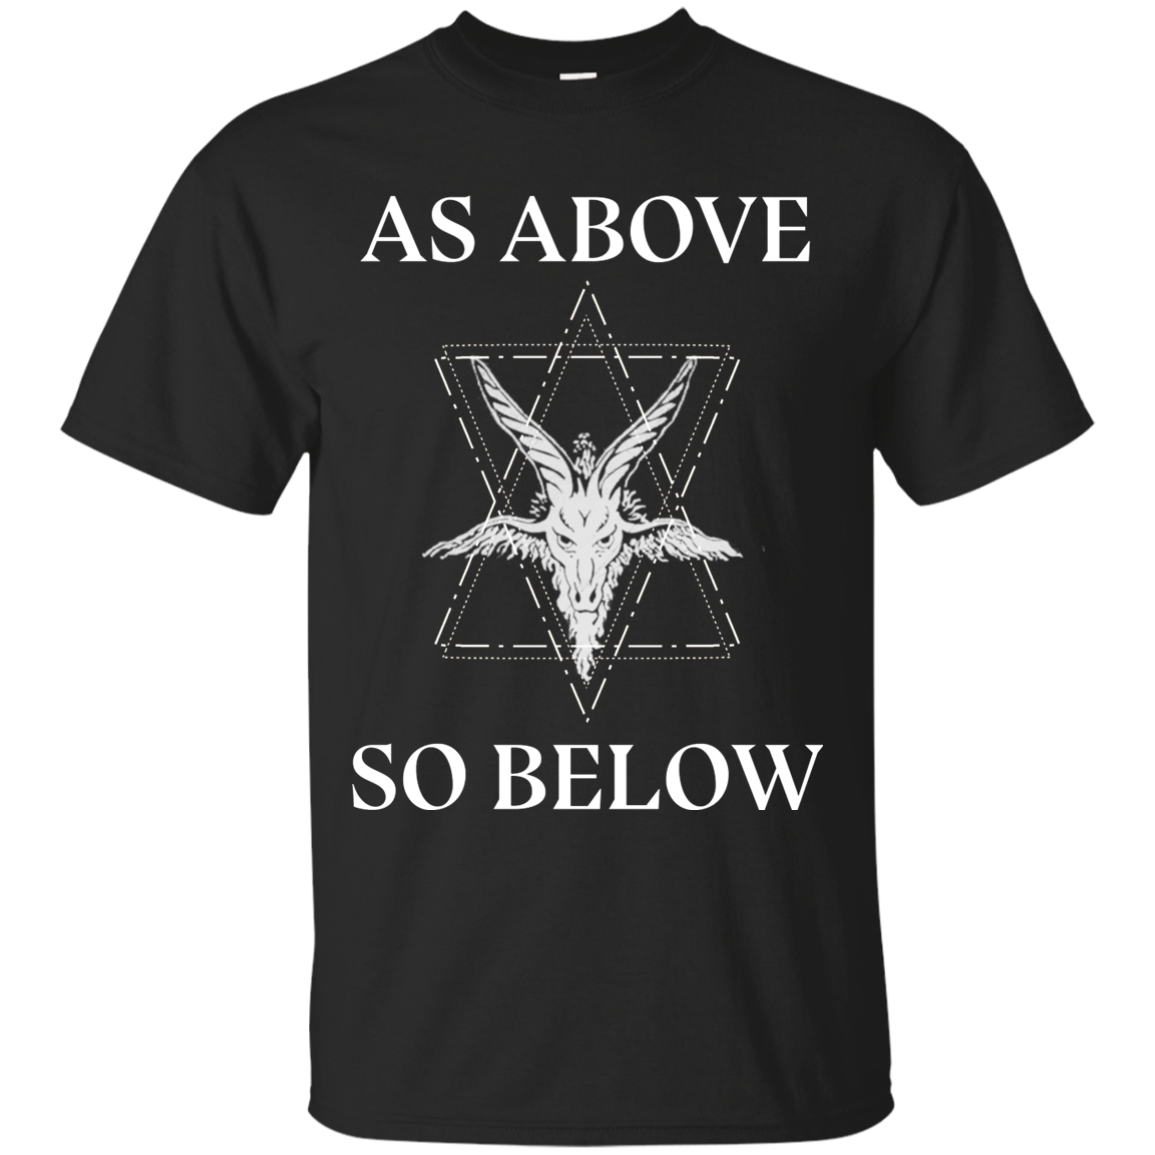 As above so below Men Premium Gildan T-Shirt